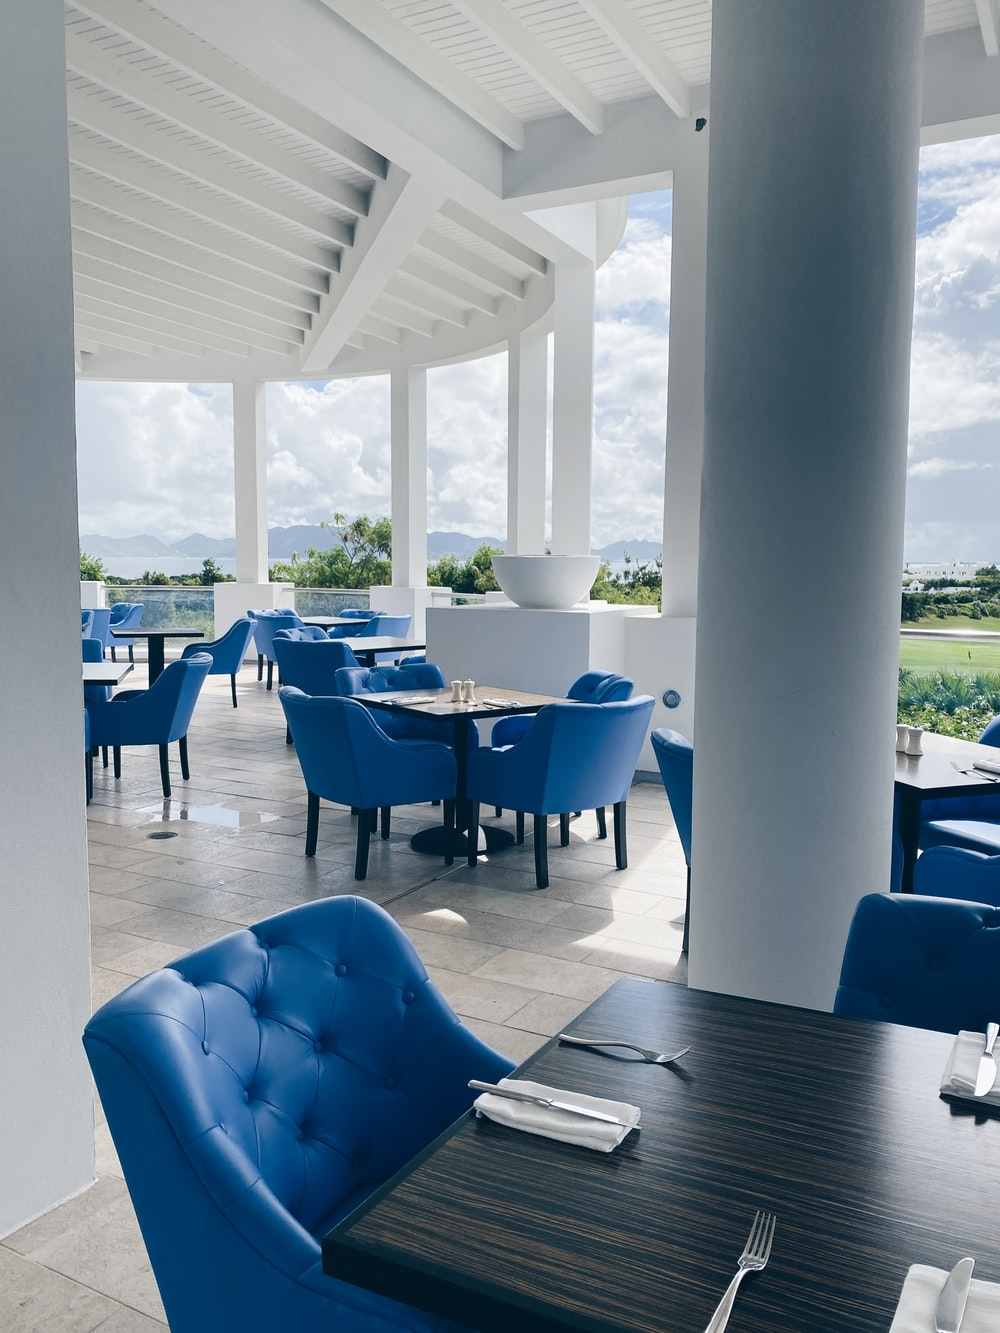 blue chairs and table near glass window